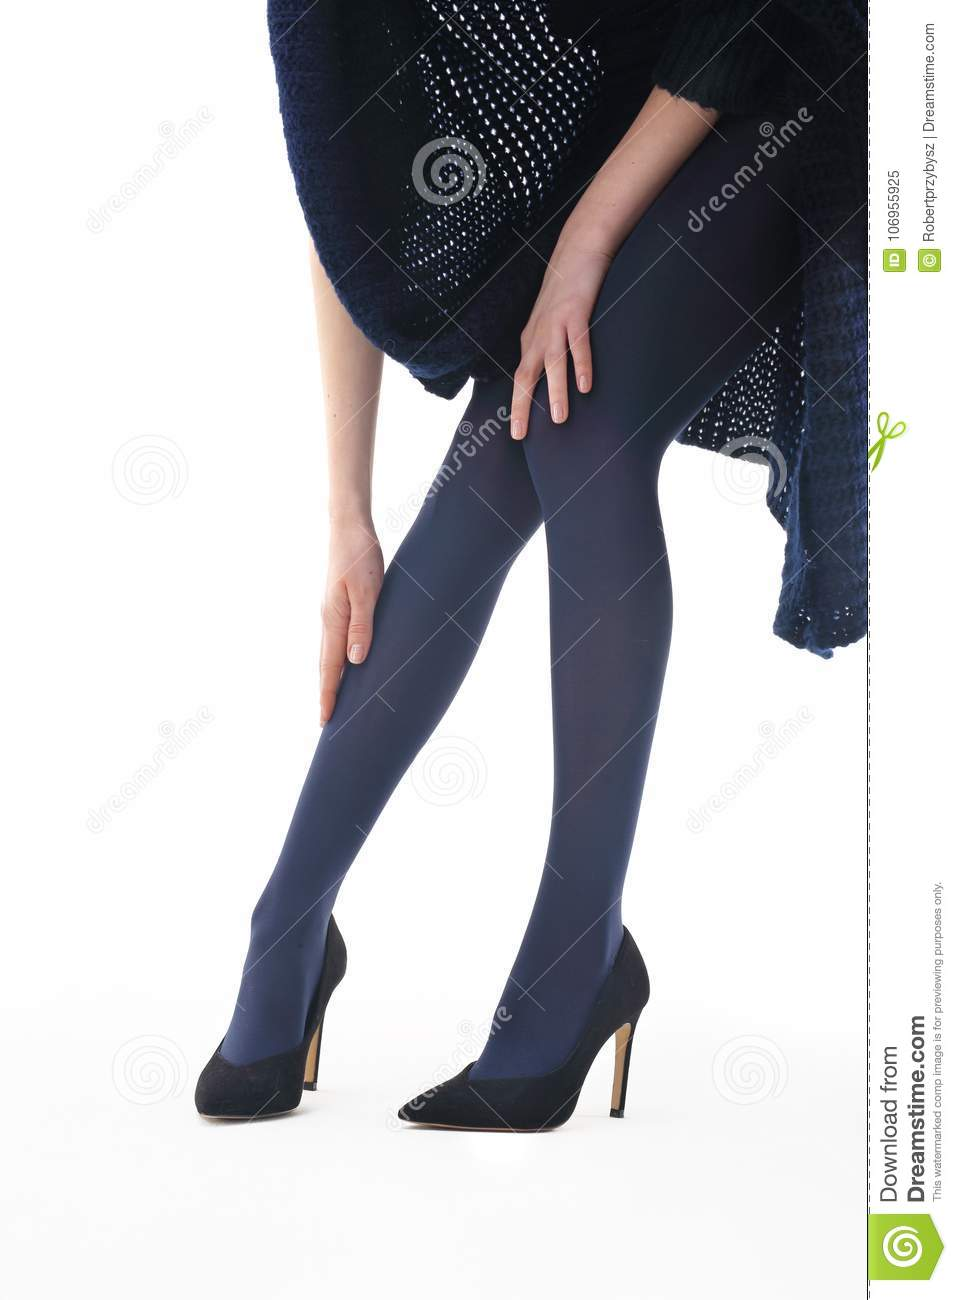 2f098973e Beautiful and shapely legs of a woman in opaque tights.